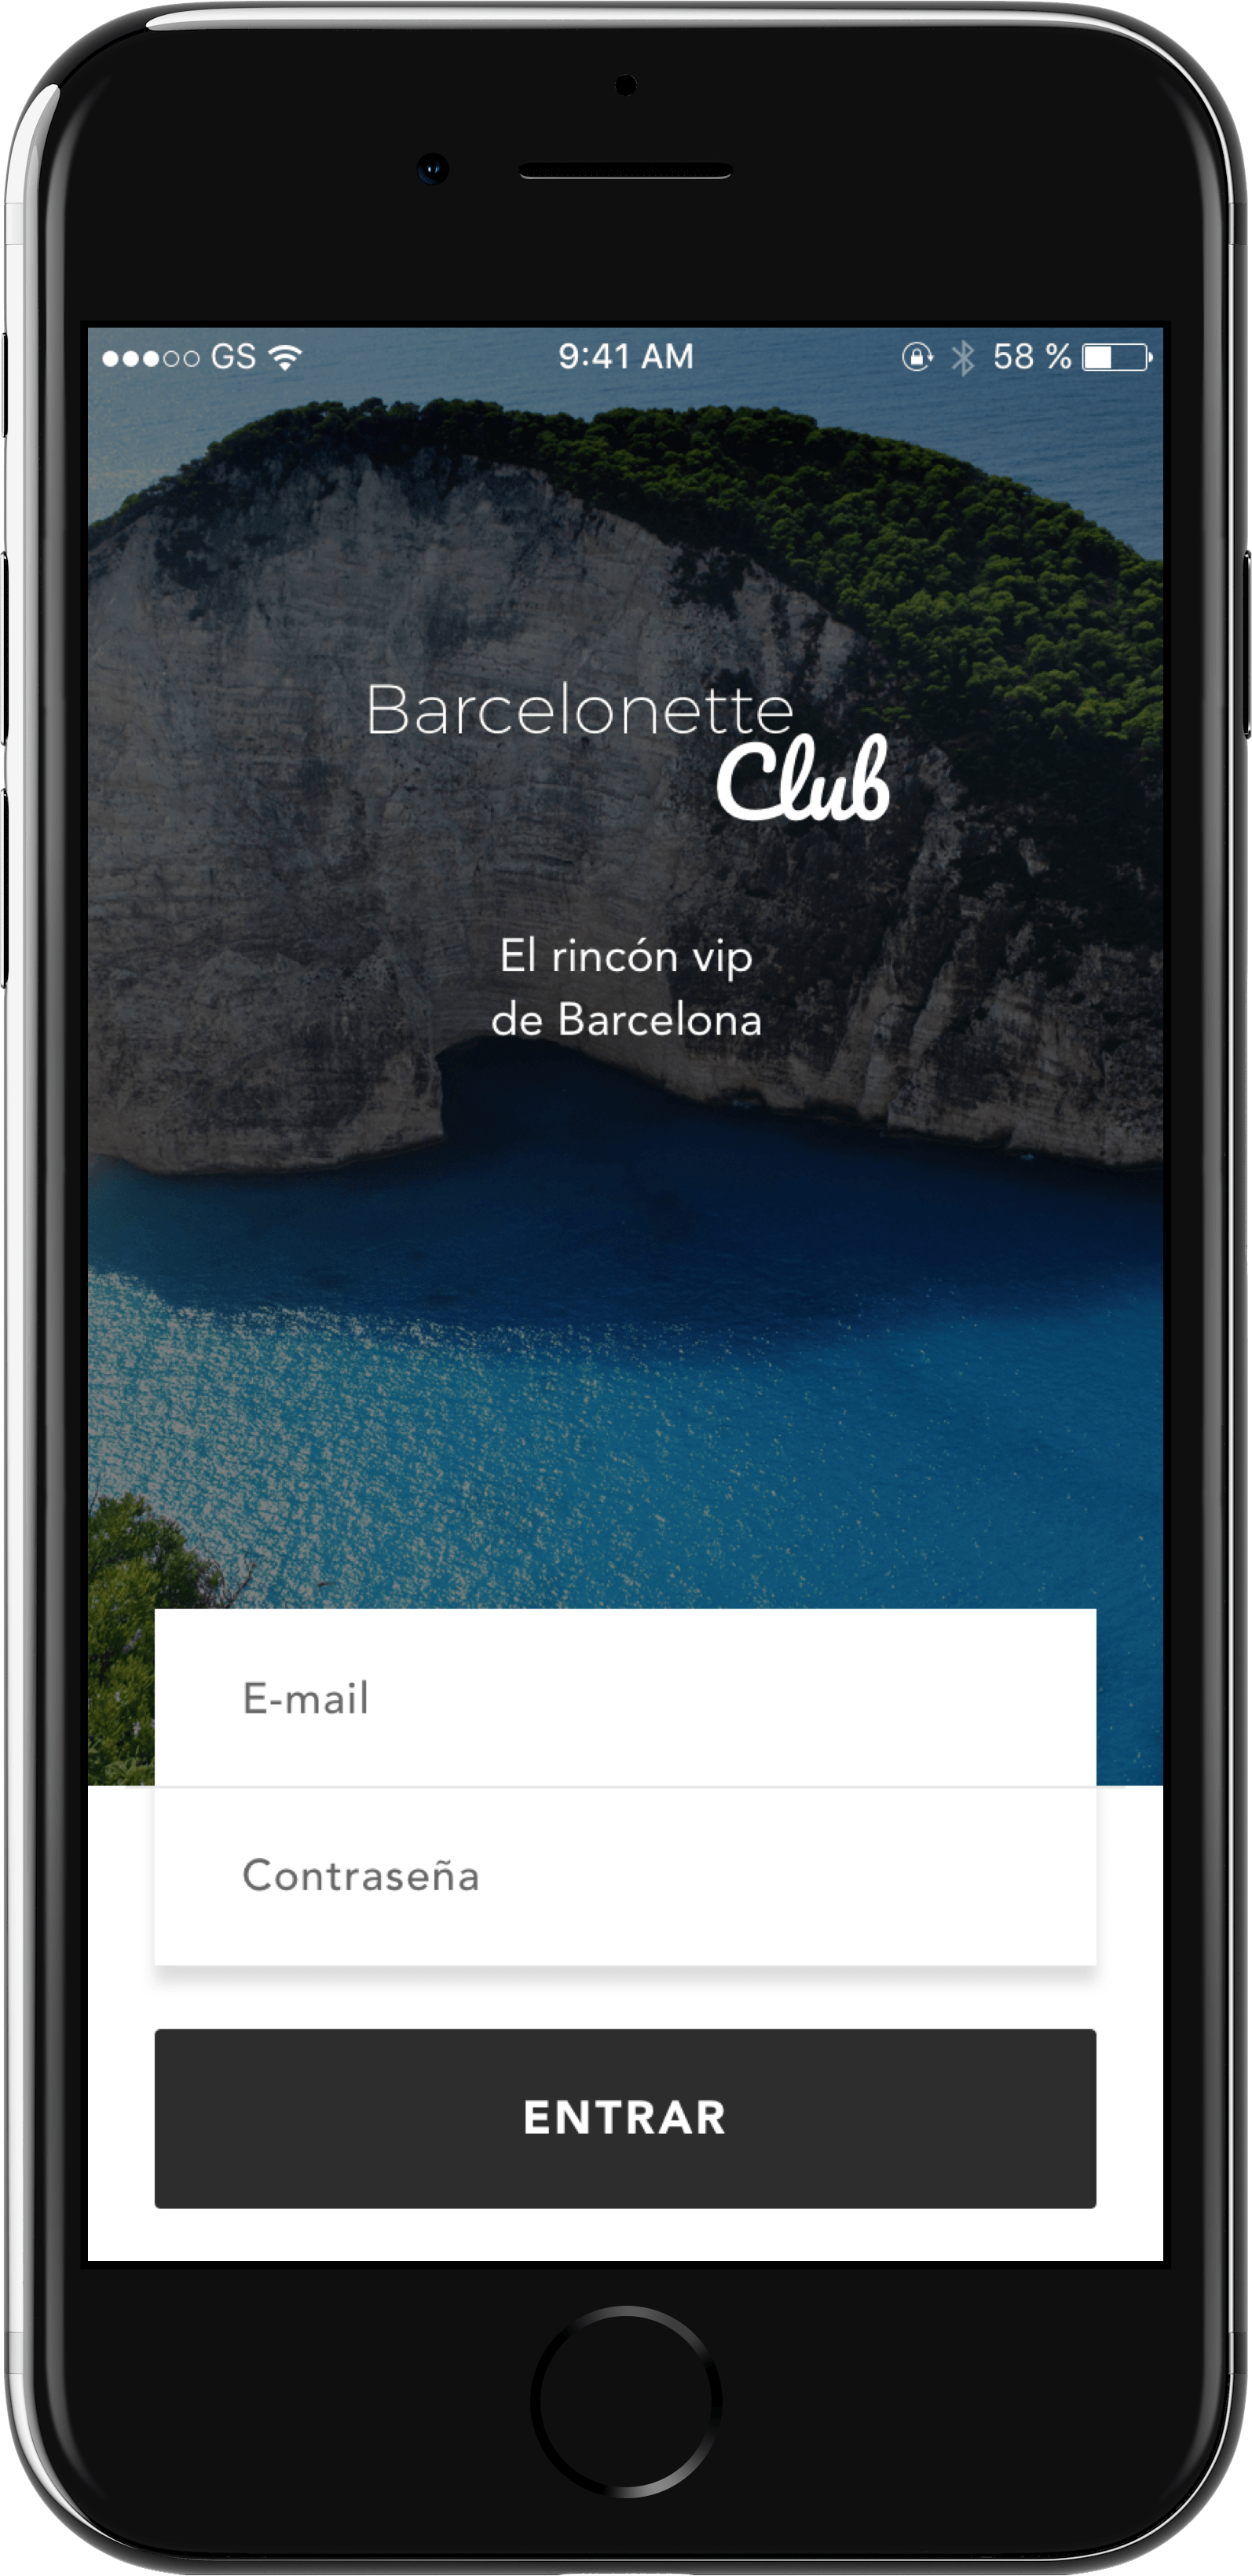 Barcelonette Club app